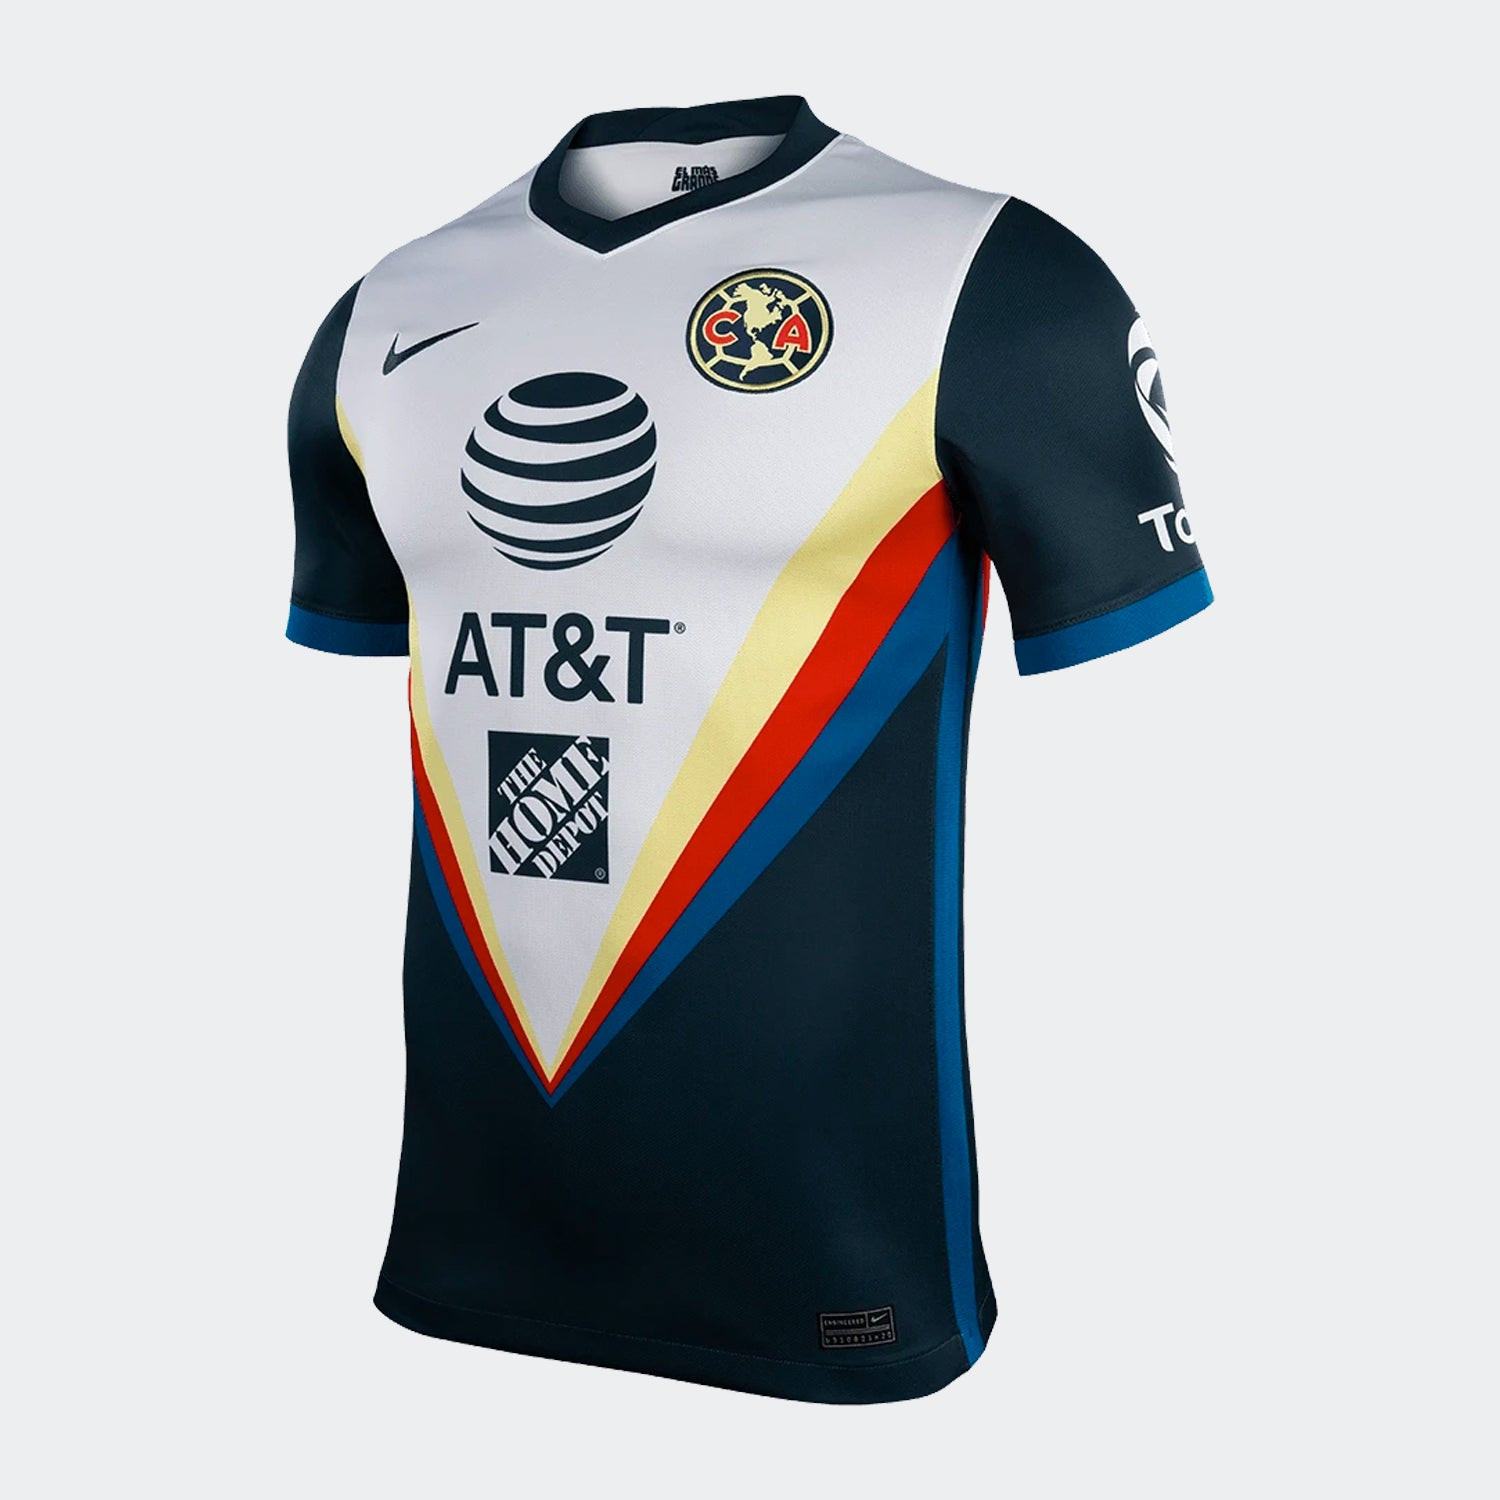 Club America Playera Visita 20-21 | Club America Away Jersey 20-21